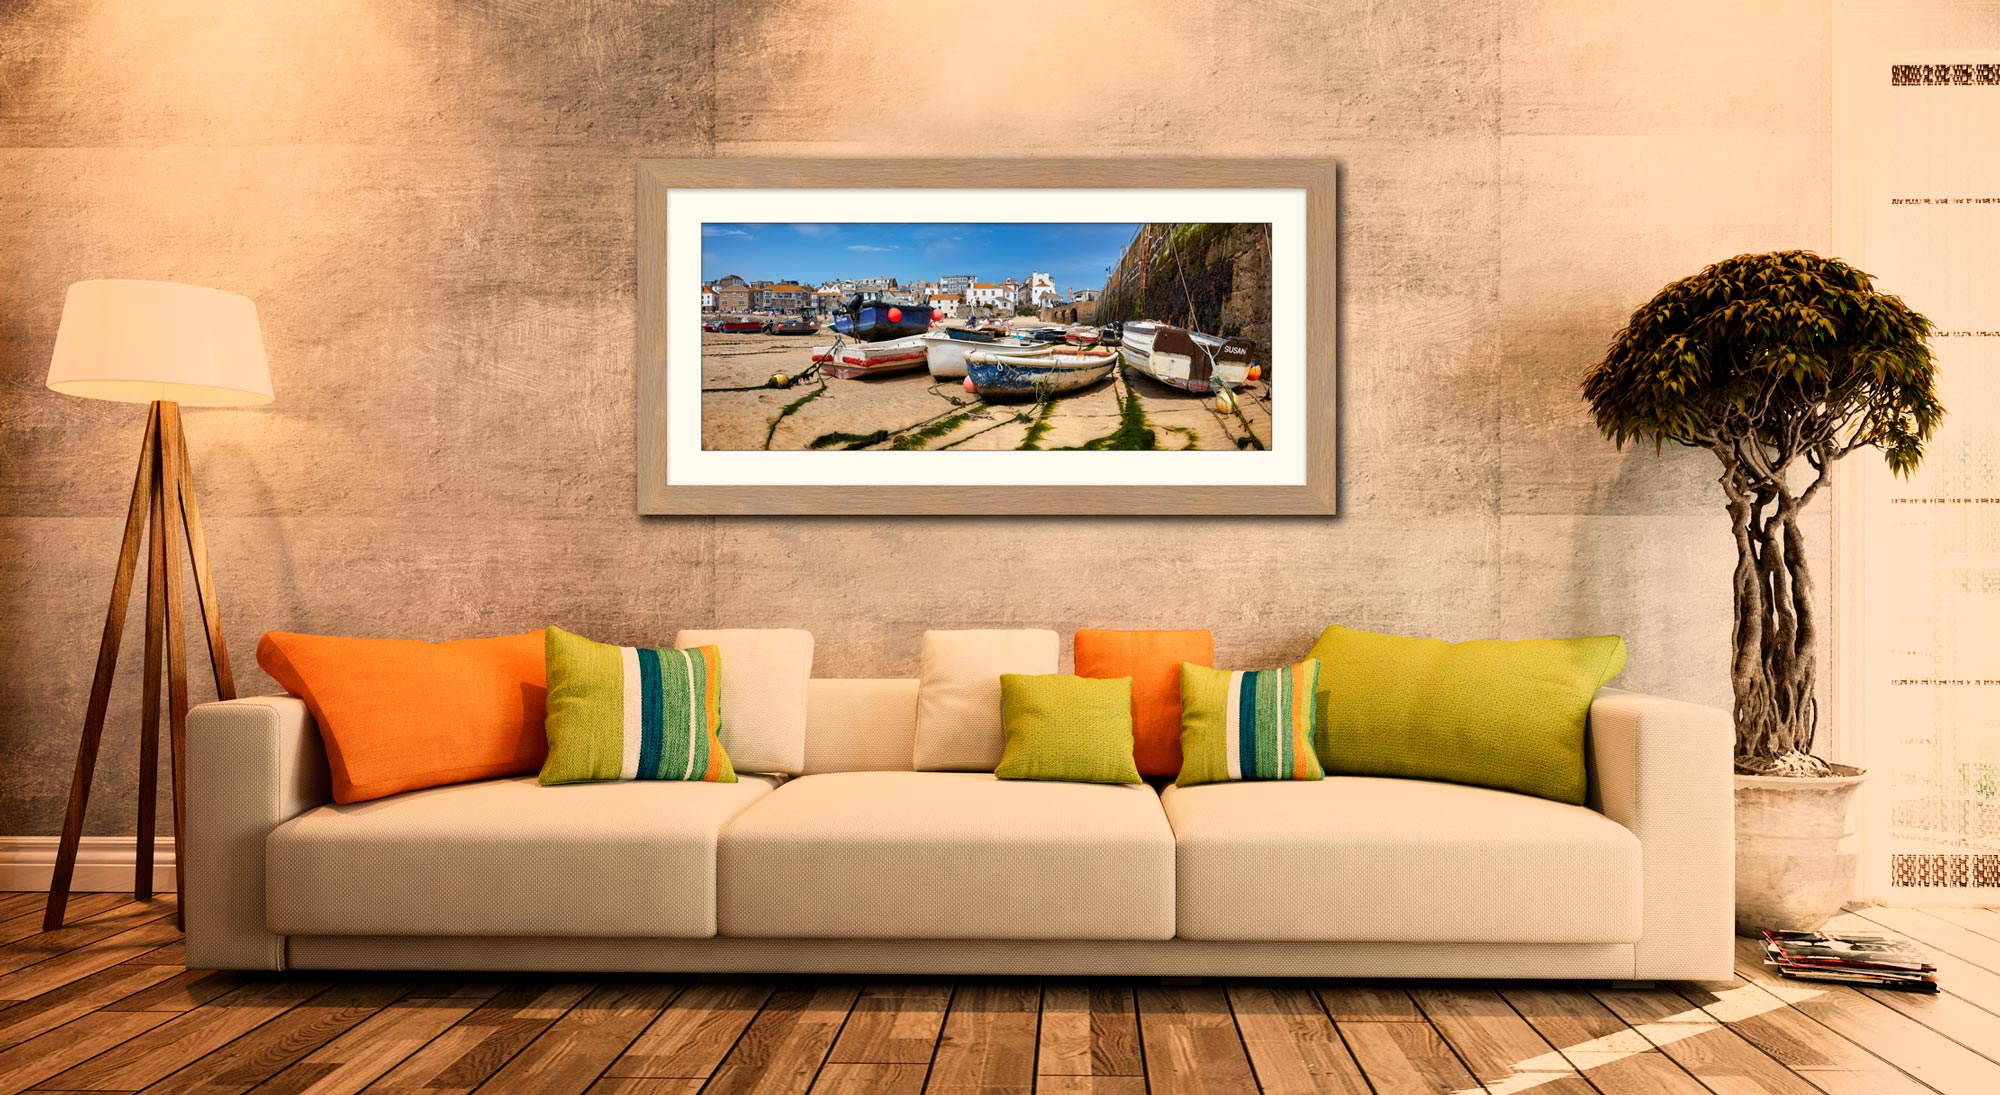 Boats on the Sand - Framed Print with Mount on Wall